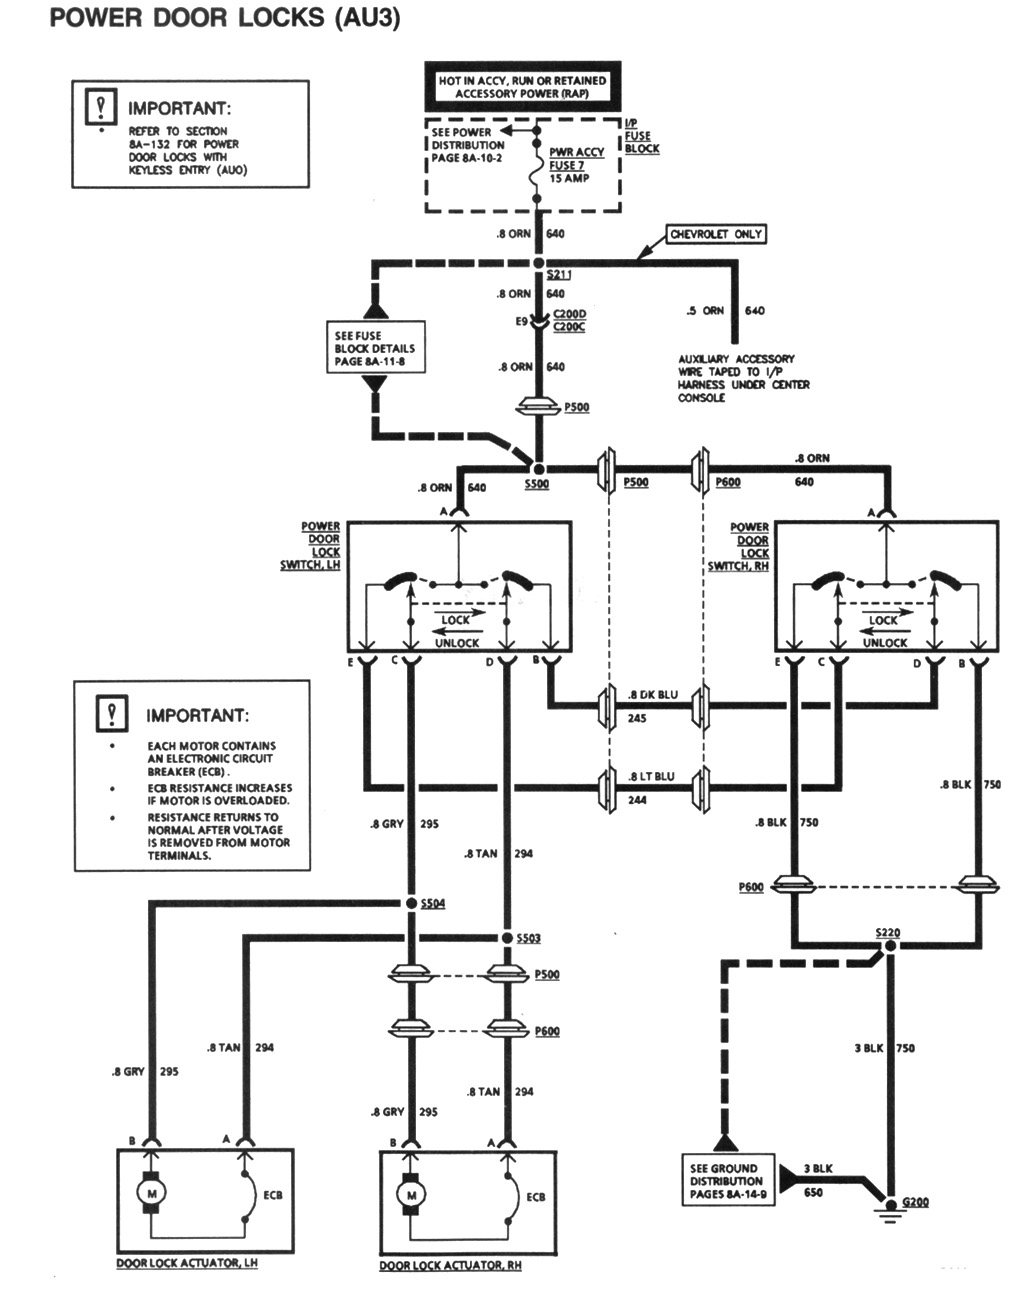 94 chevy door lock diagram another blog about wiring diagram u2022 rh ok2  infoservice ru universal power door lock wiring diagram spal power door  lock ...